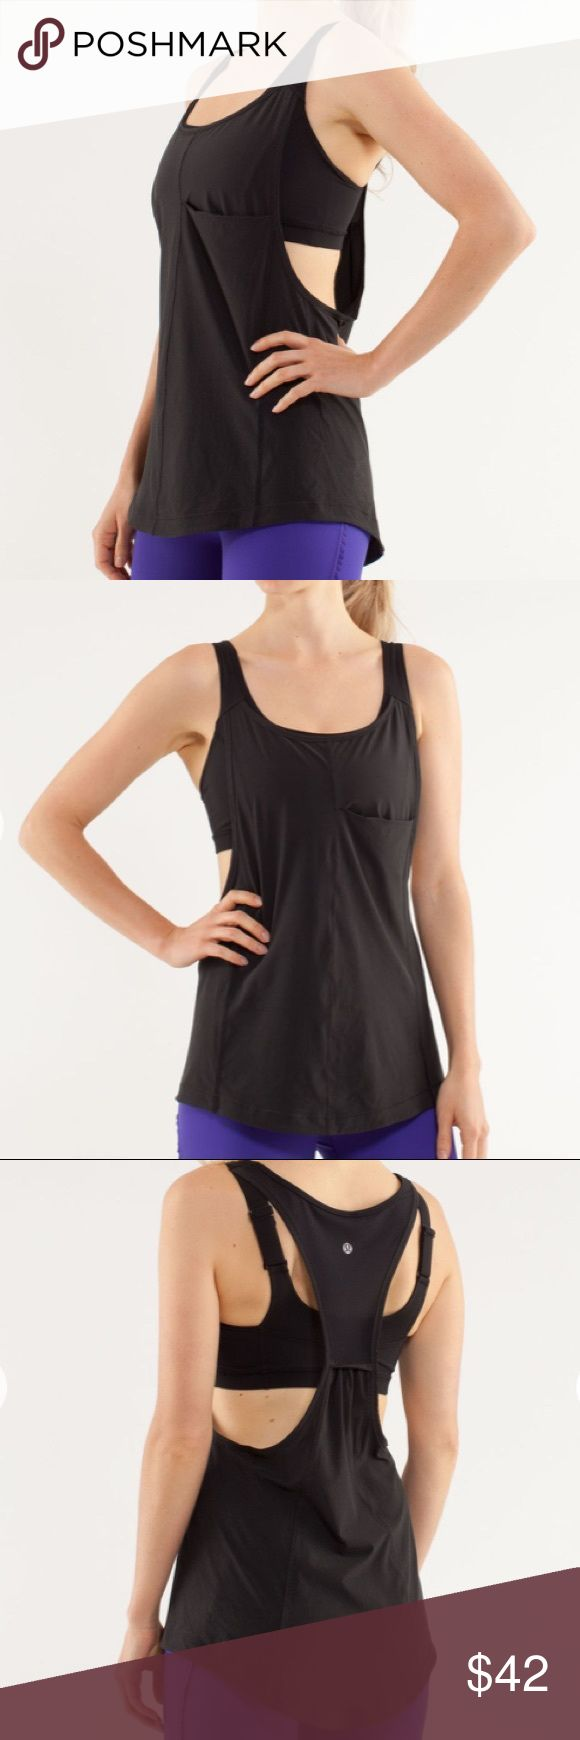 Lululemon Run: For Your Money Tank Breezy tank with a high support bra that has adjustable straps and pockets for optional cups. Longer in back to keep you covered. Low cut arms and racerback allow you to move freely. Small pocket on front to hold key/card/cash... In perfect condition, no snags or pills. First three photos are stock pics. lululemon athletica Tops Tank Tops